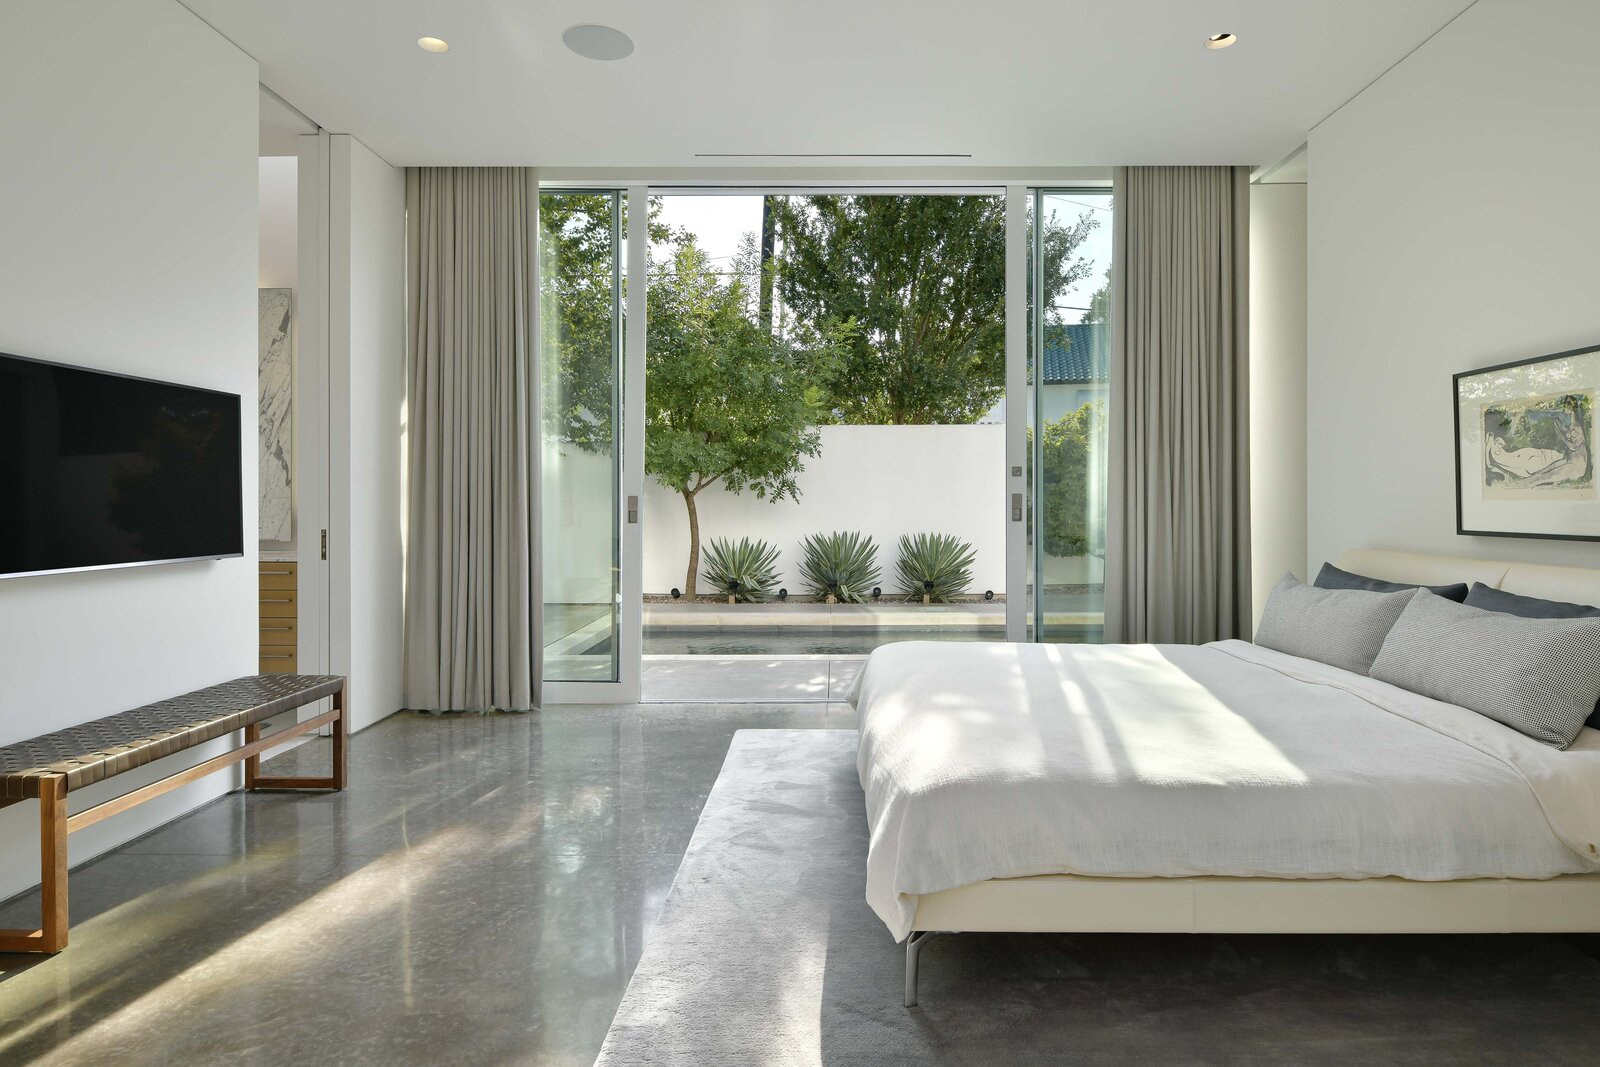 Bedroom, Bed, Ceiling Lighting, Concrete Floor, and Bench Another set of sliding glass doors provide access to the courtyard. Pocket doors open to the en suite bathroom at both ends of the room.  Photo 7 of 11 in A Chic Urban Retreat by Modernist Architect Lionel Morrison Asks $2.5M in Dallas